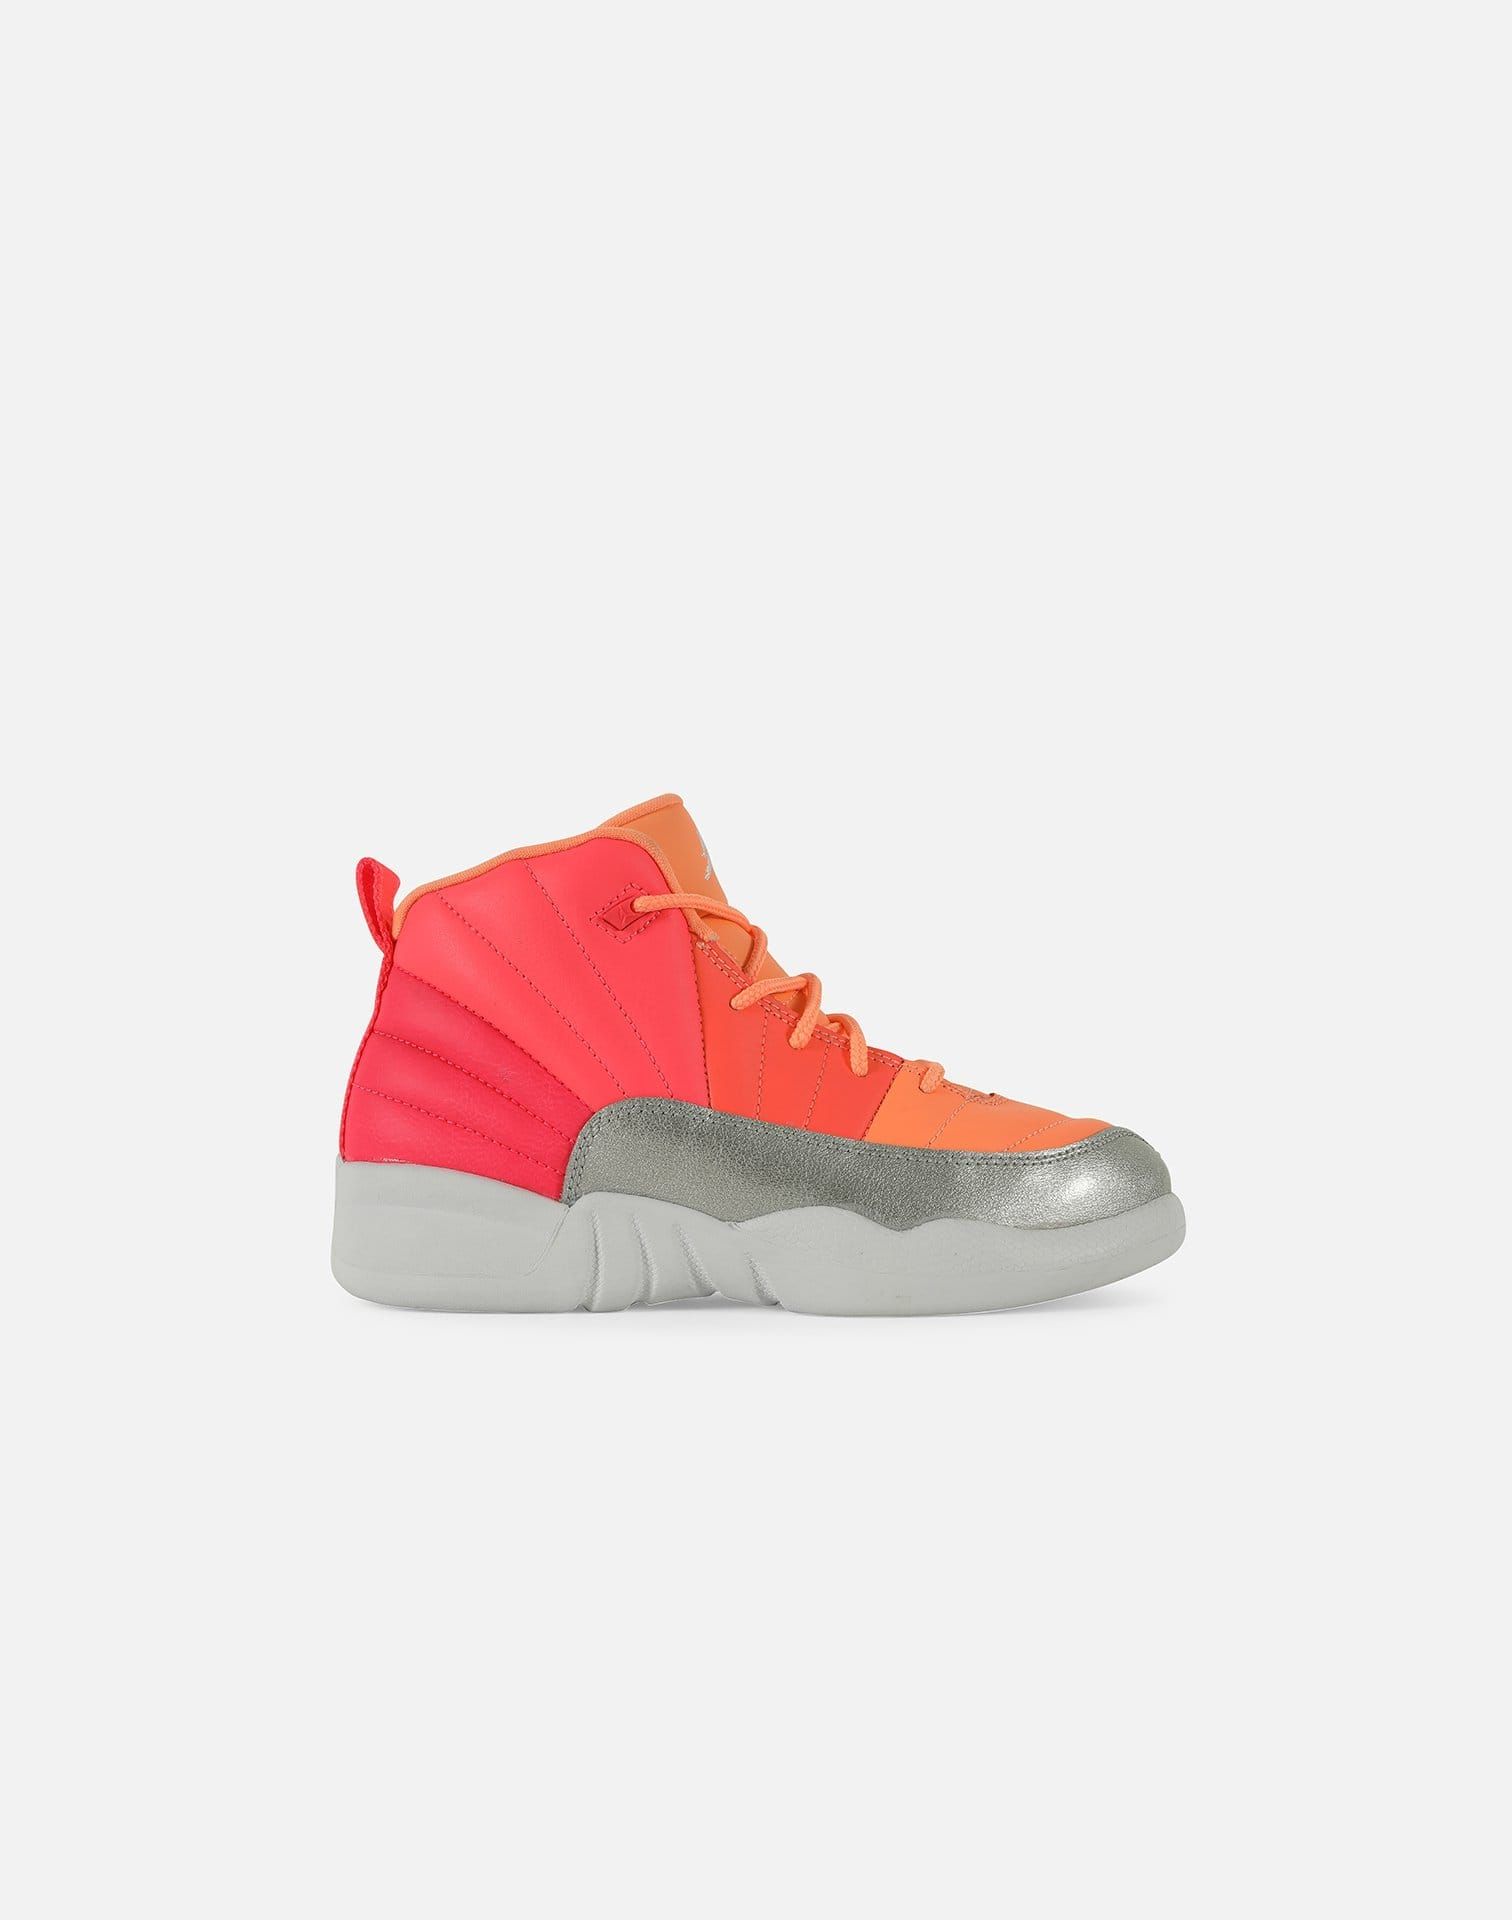 Jordan Air Jordan Retro 12 'Hot Punch' Pre-School